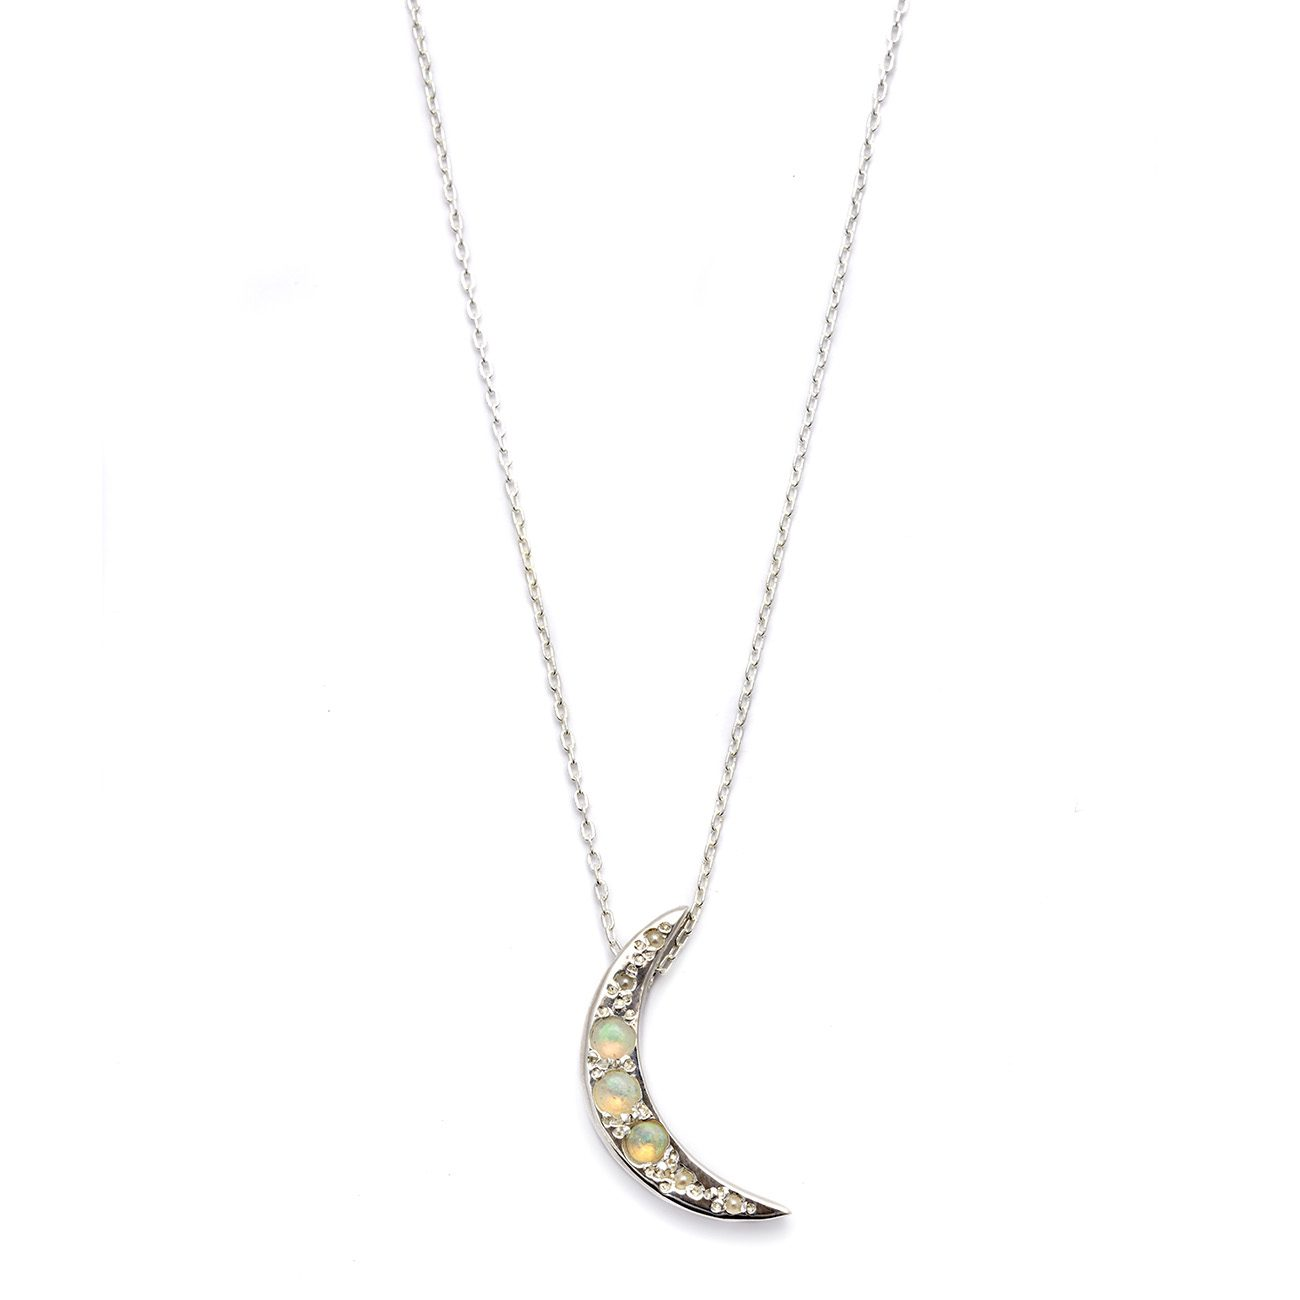 Elisa Solomon - Sterling Silver Moon Necklace With Opals